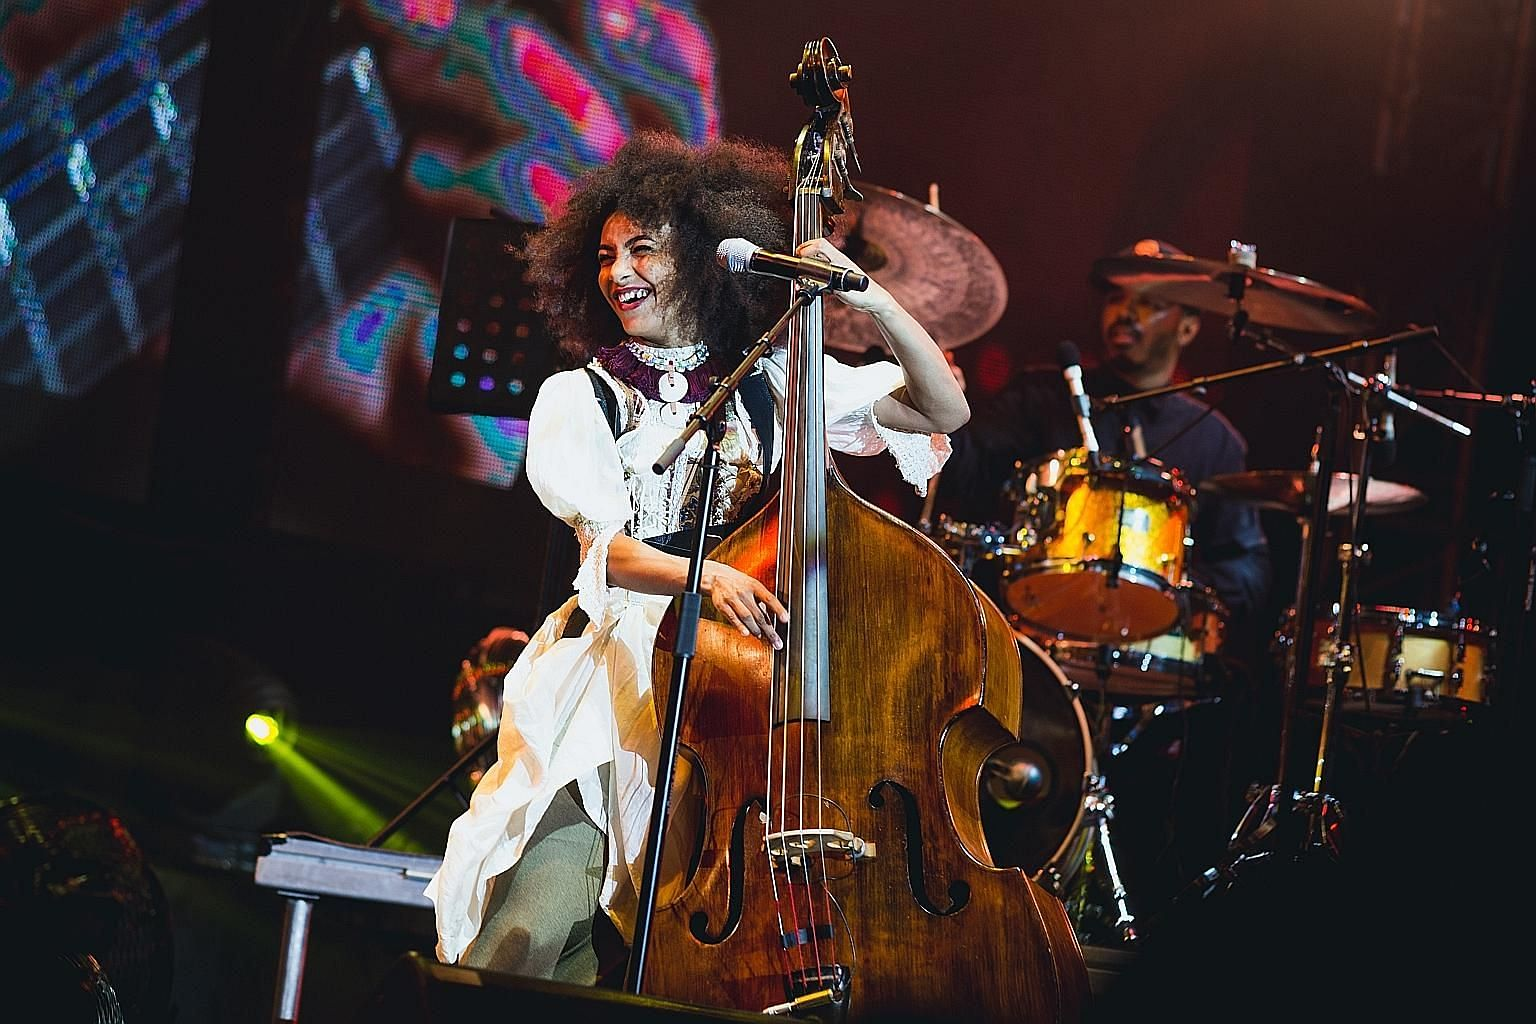 American multi- instrumentalist Esperanza Spalding (above) displayed dazzling virtuosity, while Senegalese singer Youssou N'Dour gave a fretless feel to his prayerful performance with shades of reggae.